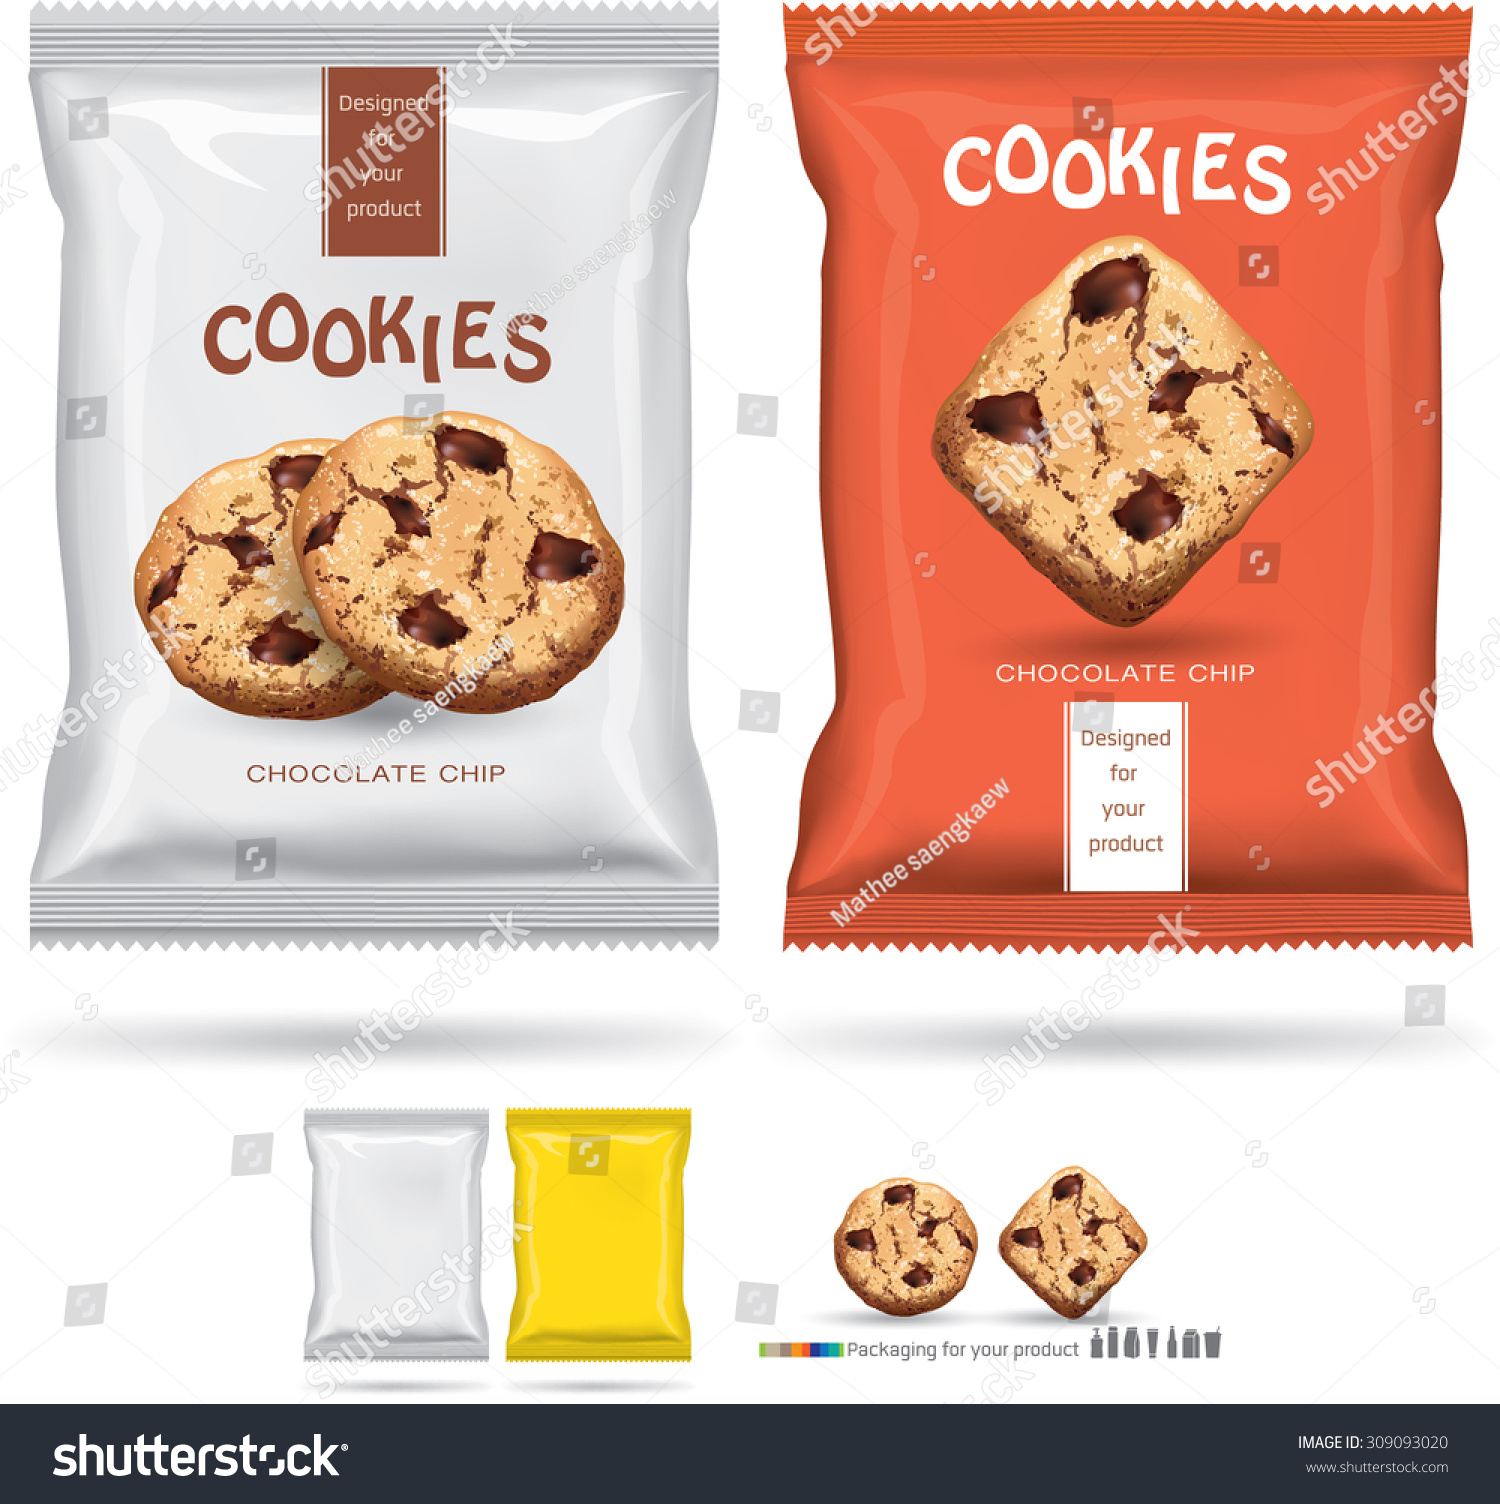 Design packaging for chocolate cookies.vector